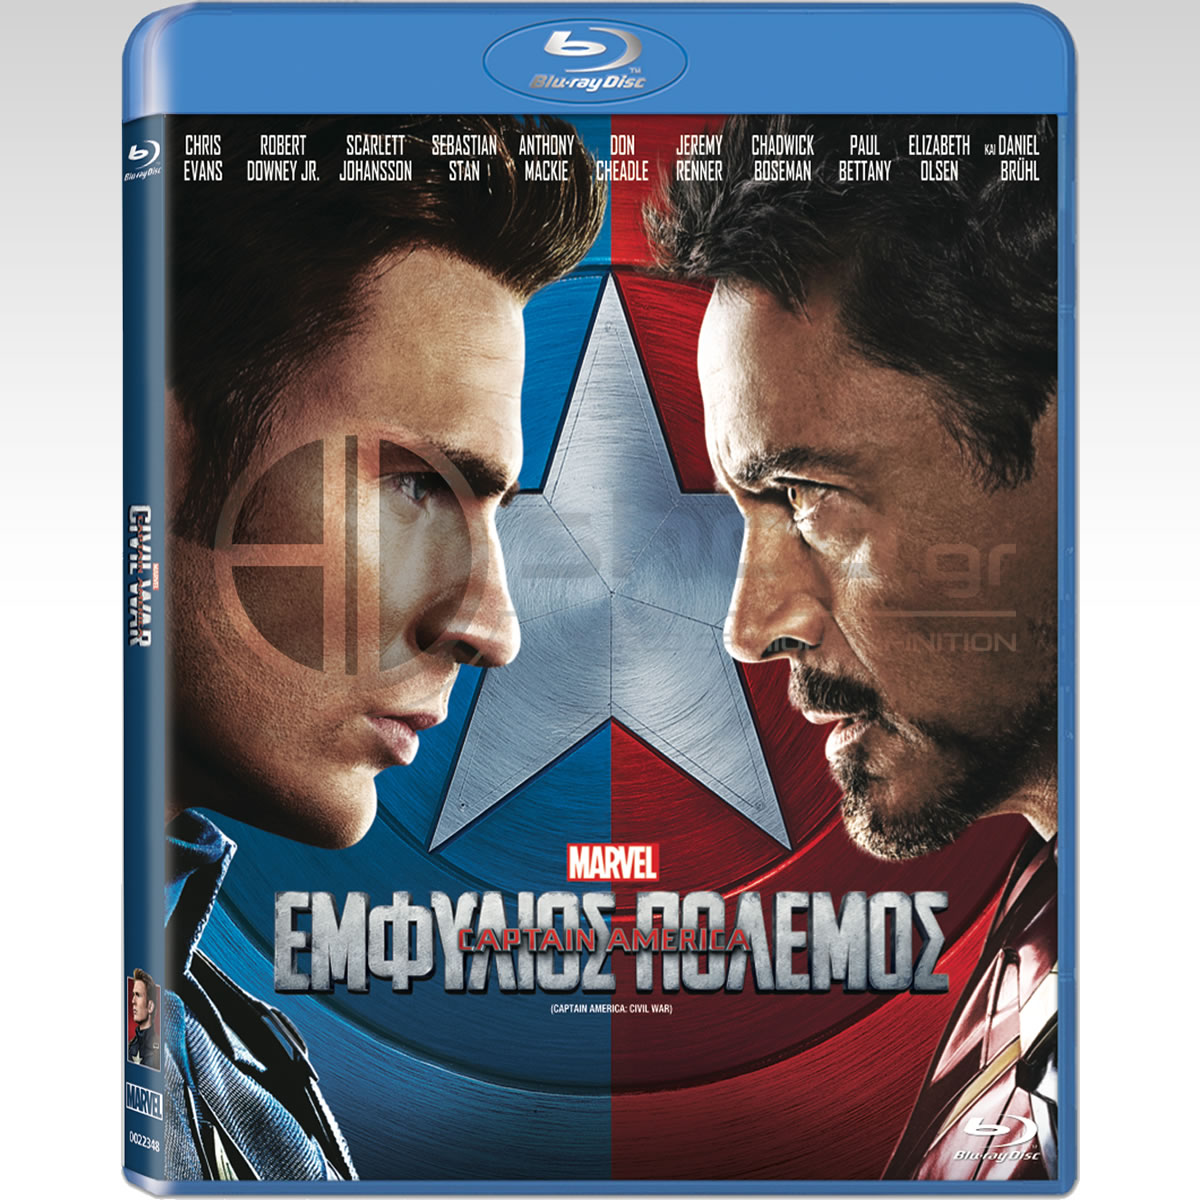 CAPTAIN AMERICA 3: CIVIL WAR - CAPTAIN AMERICA 3: ΕΜΦΥΛΙΟΣ ΠΟΛΕΜΟΣ (BLU-RAY)